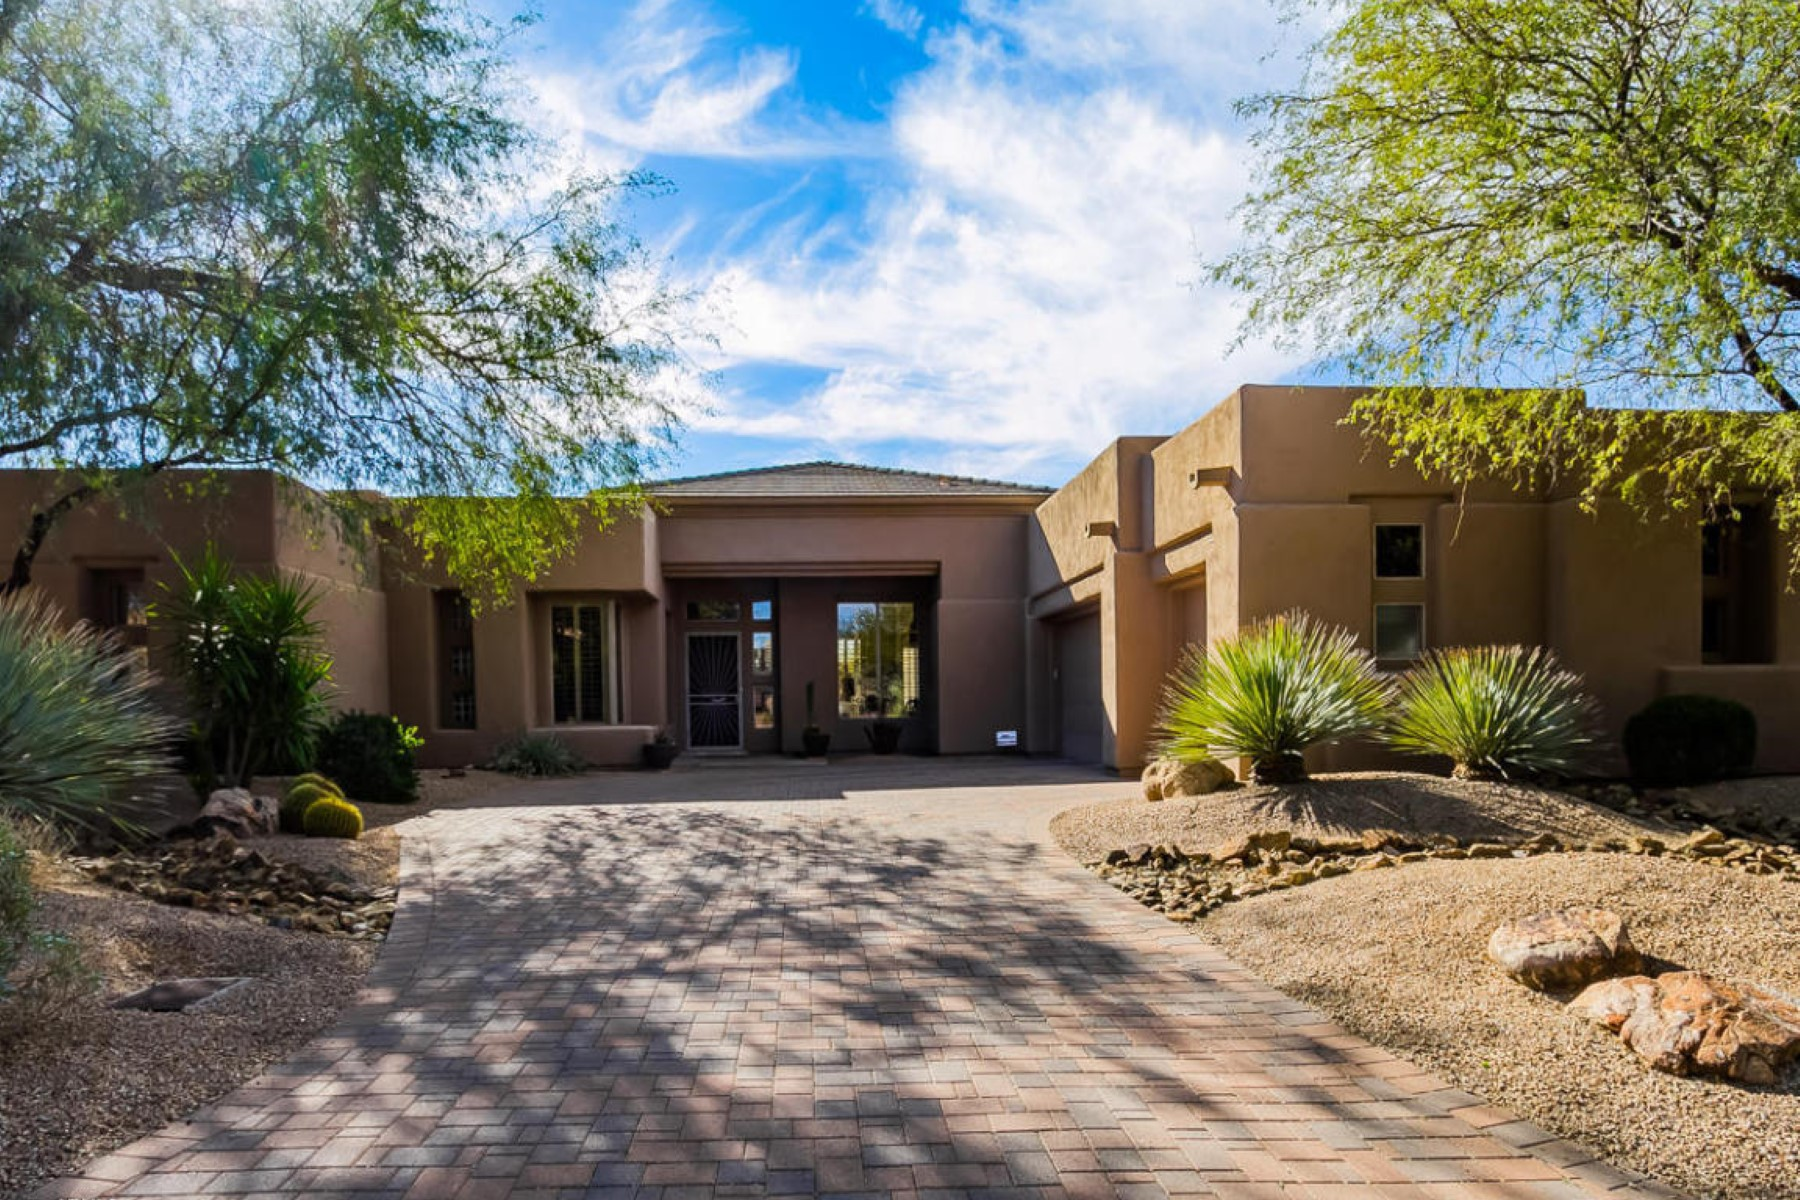 Maison unifamiliale pour l Vente à Beautiful true home on an attractive lot 9409 E Monument Dr Scottsdale, Arizona 85262 États-Unis